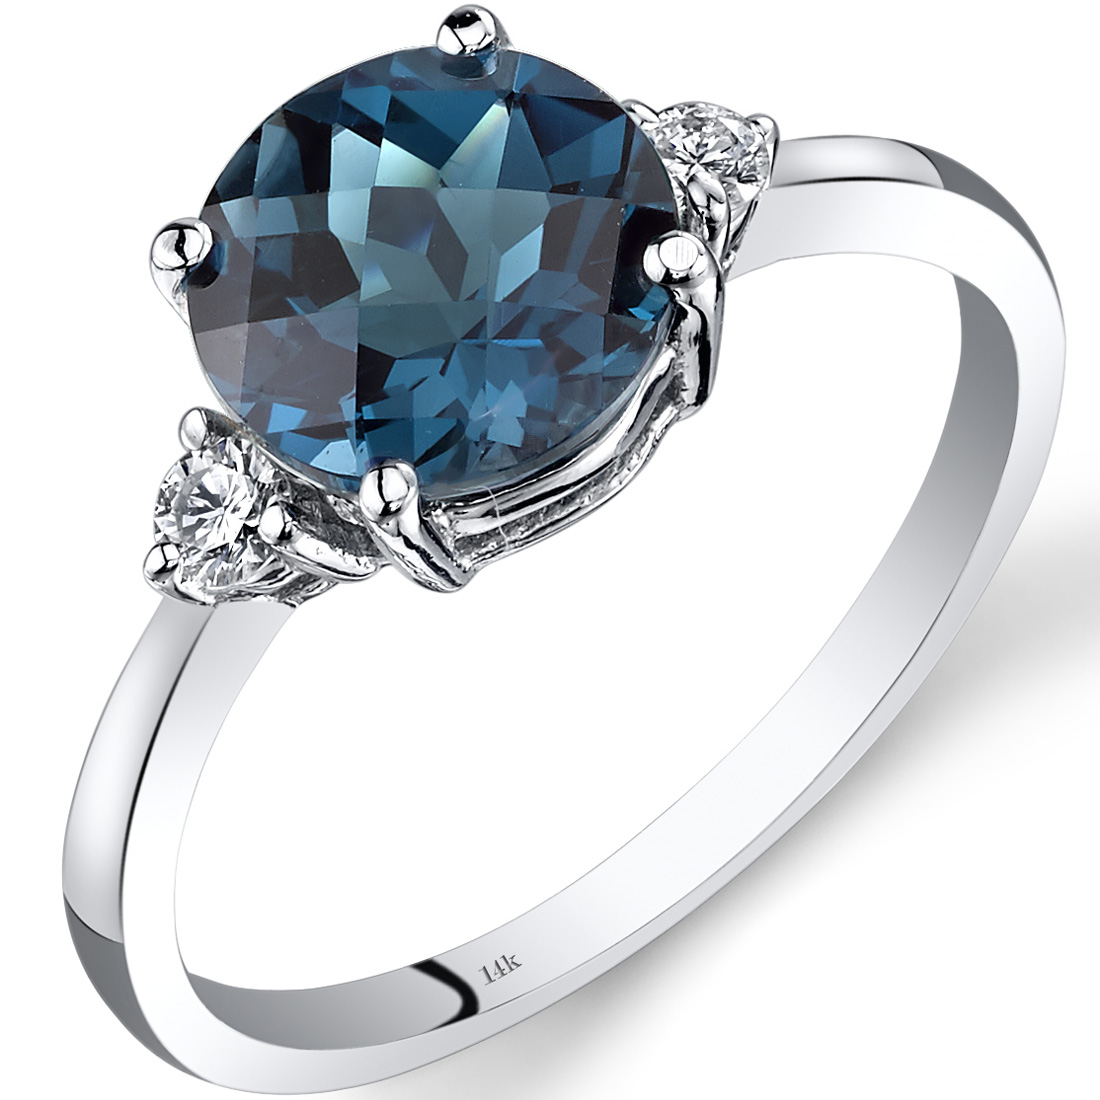 Peora 2.25 Carat T.G.W. Round-Cut London Blue Topaz and Diamond Accent 14kt White Gold Ring Size 7 by